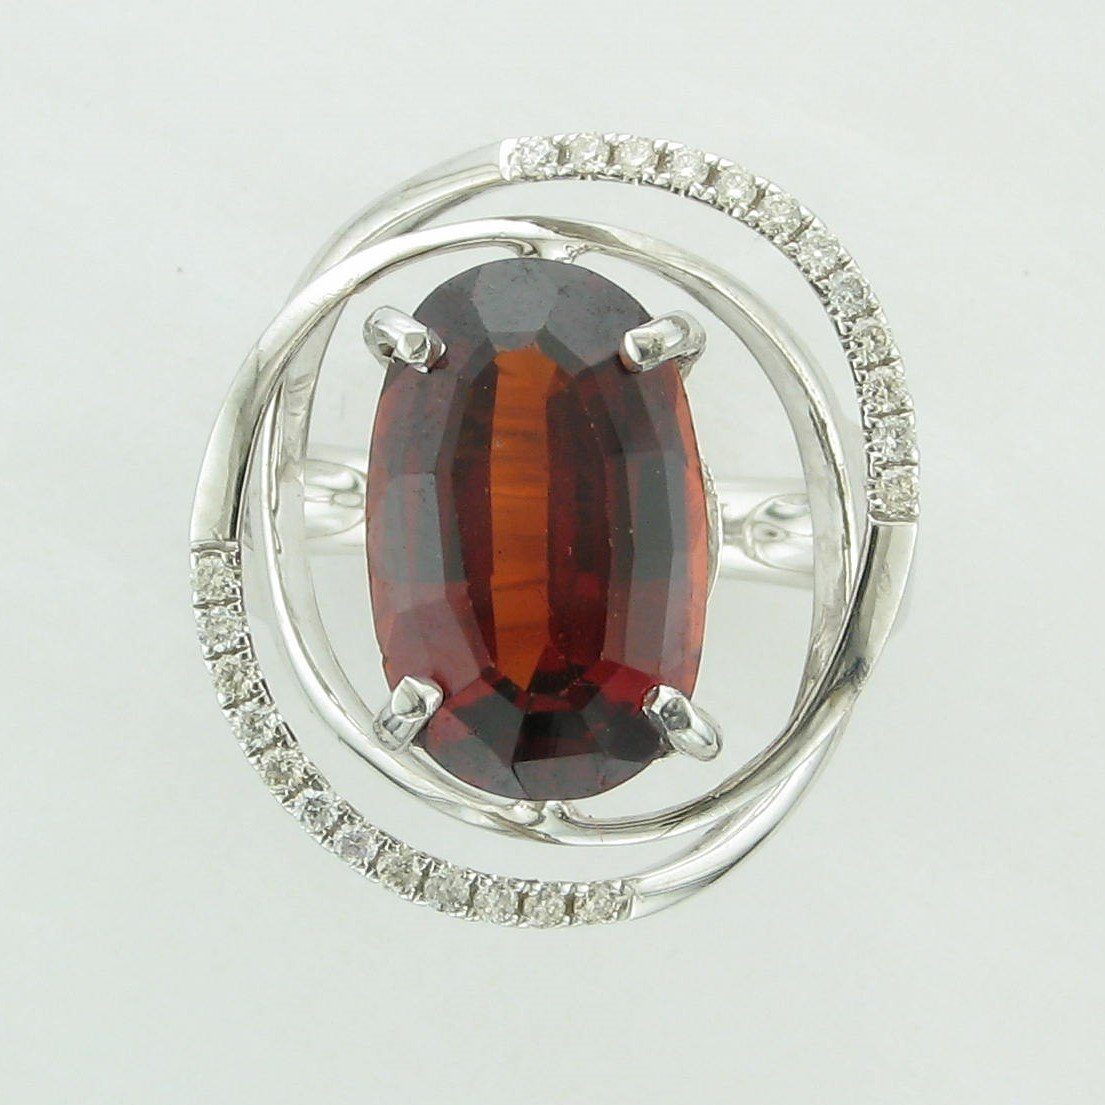 7.11ct Oval Mozambique Garnet Ring set in 14K White Gold